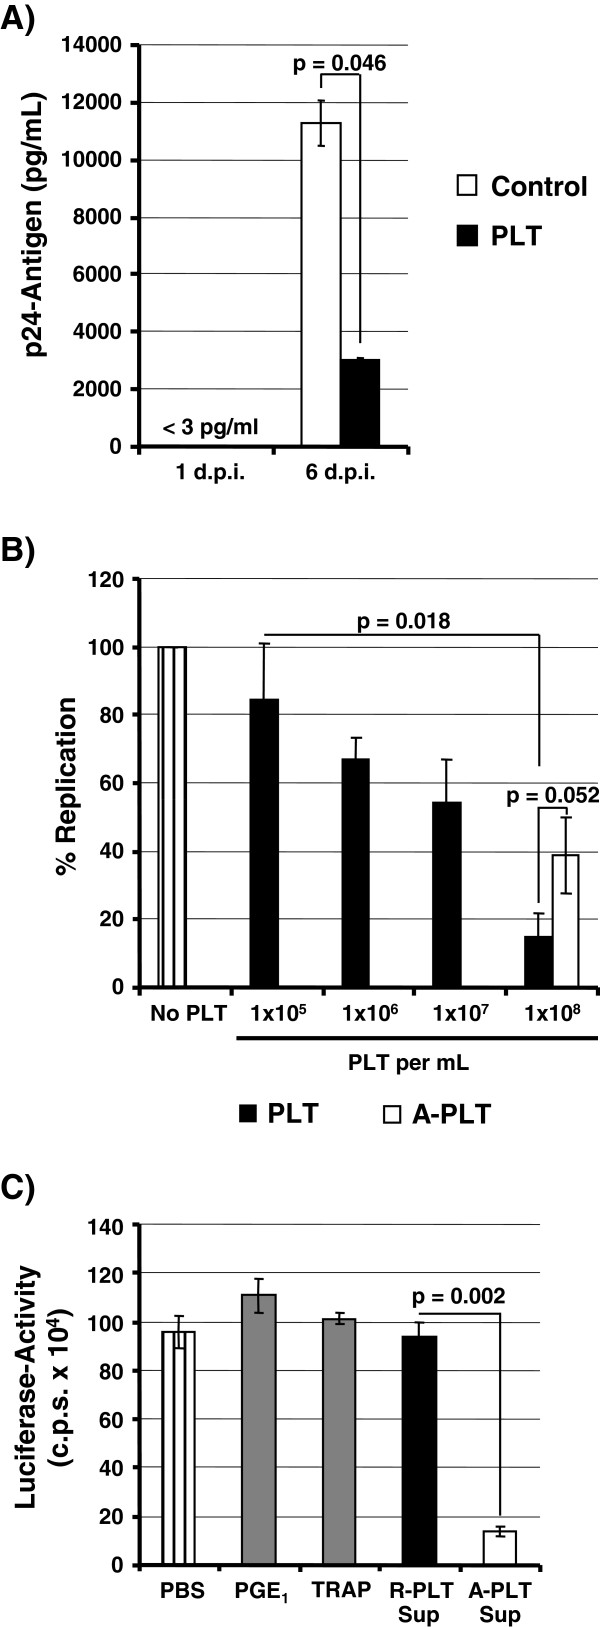 Platelets inhibit HIV-1 spread in T cells and release an anti-HIV-1 activity upon activation. ( A ) PHA stimulated PBMCs were infected with 10 pg of HIV-1 NL4-3 in the presence of untreated platelets (PLT, 1 × 10 8 /mL) or medium alone (control) and p24-antigen content in the supernatants was measured on day one and six post infection. The p24-antigen levels at day one post infection were below detection range. The results of a single representative experiment performed in duplicates are shown, error bars indicate SD. The results were confirmed in an independent experiment. ( B ) Platelets inhibit HIV-1 spread in adjacent T cells in a concentration- and activation status- dependent manner. The indicated amounts of non-resting platelets (PLT, platelets left untreated) or activated platelets (A-PLT, platelets treated with TRAP) were added to C8166-SEAP T cells, the cultures infected with 10 pg of HIV-1 NL4-3 and SEAP-activity measured at day five post infection. The average ± SEM of three experiments performed in triplicates is shown, SEAP-activity measured in the absence of platelets was set as 100%. ( C ) Activation of platelets induces the release of one or more HIV-1 inhibitory factors. The indicator cell line TZM-bl was incubated with supernatants from resting (R-PLT Sup) and activated platelets (A-PLT Sup) or incubated with PBS or PBS containing 10 μM PGE 1 or 100 μM TRAP. Subsequently, the cells were infected with HIV-1 NL4-3 and luciferase activities in the lysates of infected cells were measured. The results ± SD of a single experiment performed in triplicates is shown. Similar results were obtained in a separate experiment.